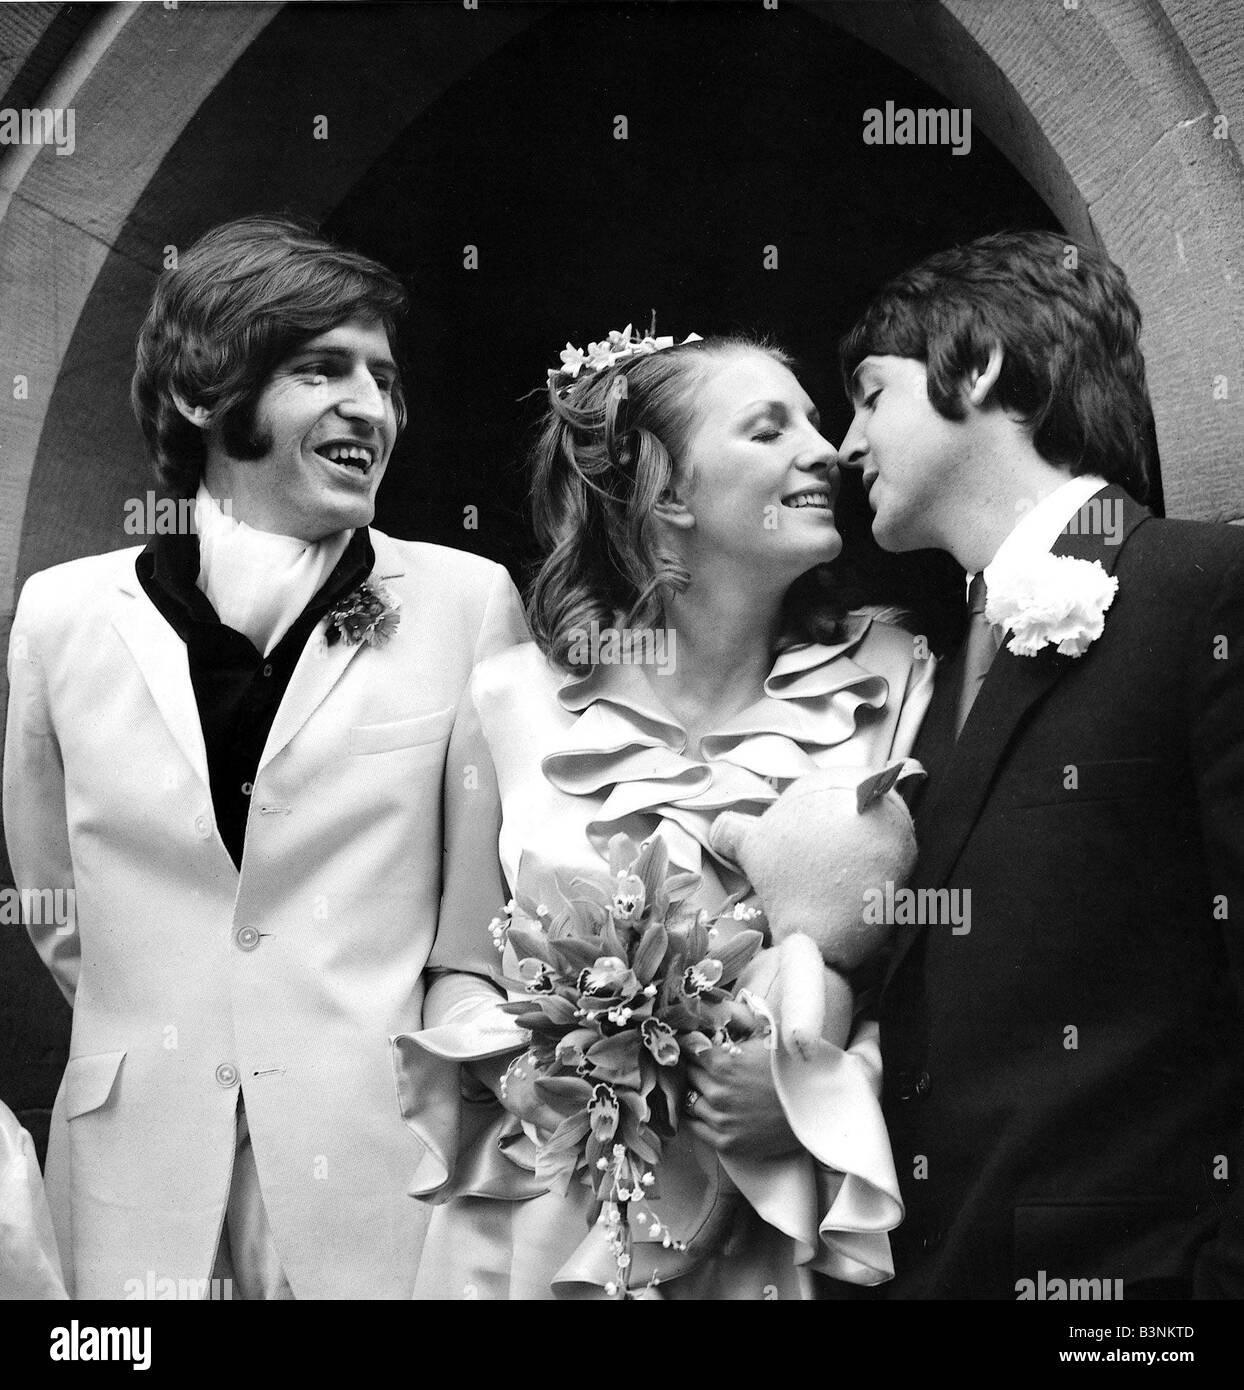 Beatles Files 1968 Paul McCartney Kisses His New Sister In Law Angela Fishwick Who Married Brother Mike Carrog North Wales June